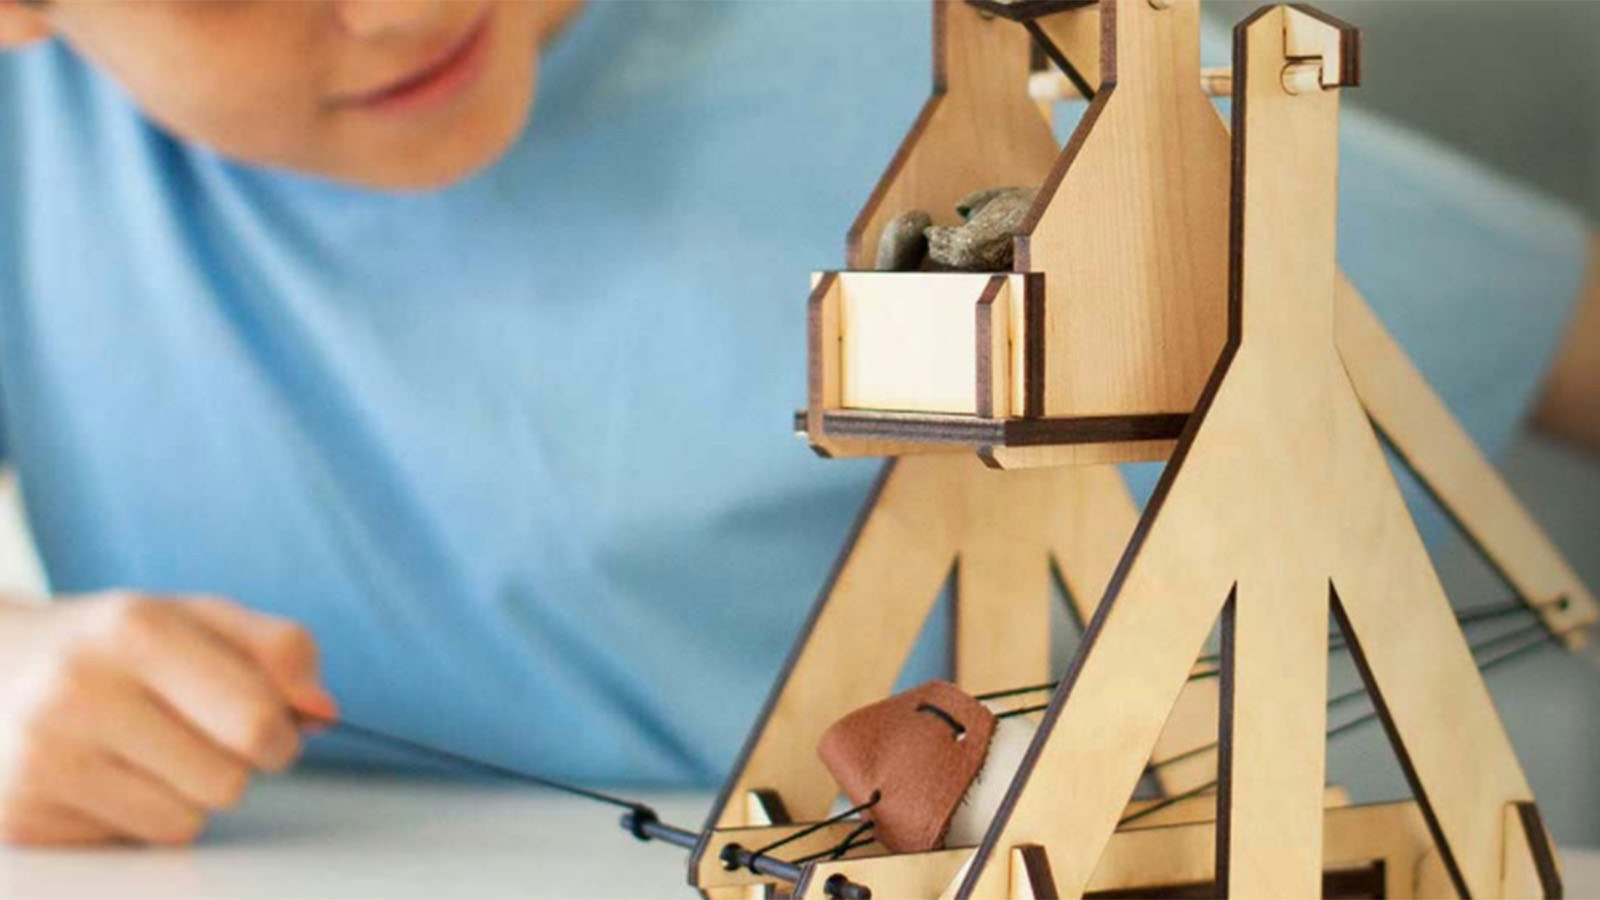 This clever subscription box foryoung builders, explorers and trebuchet fans